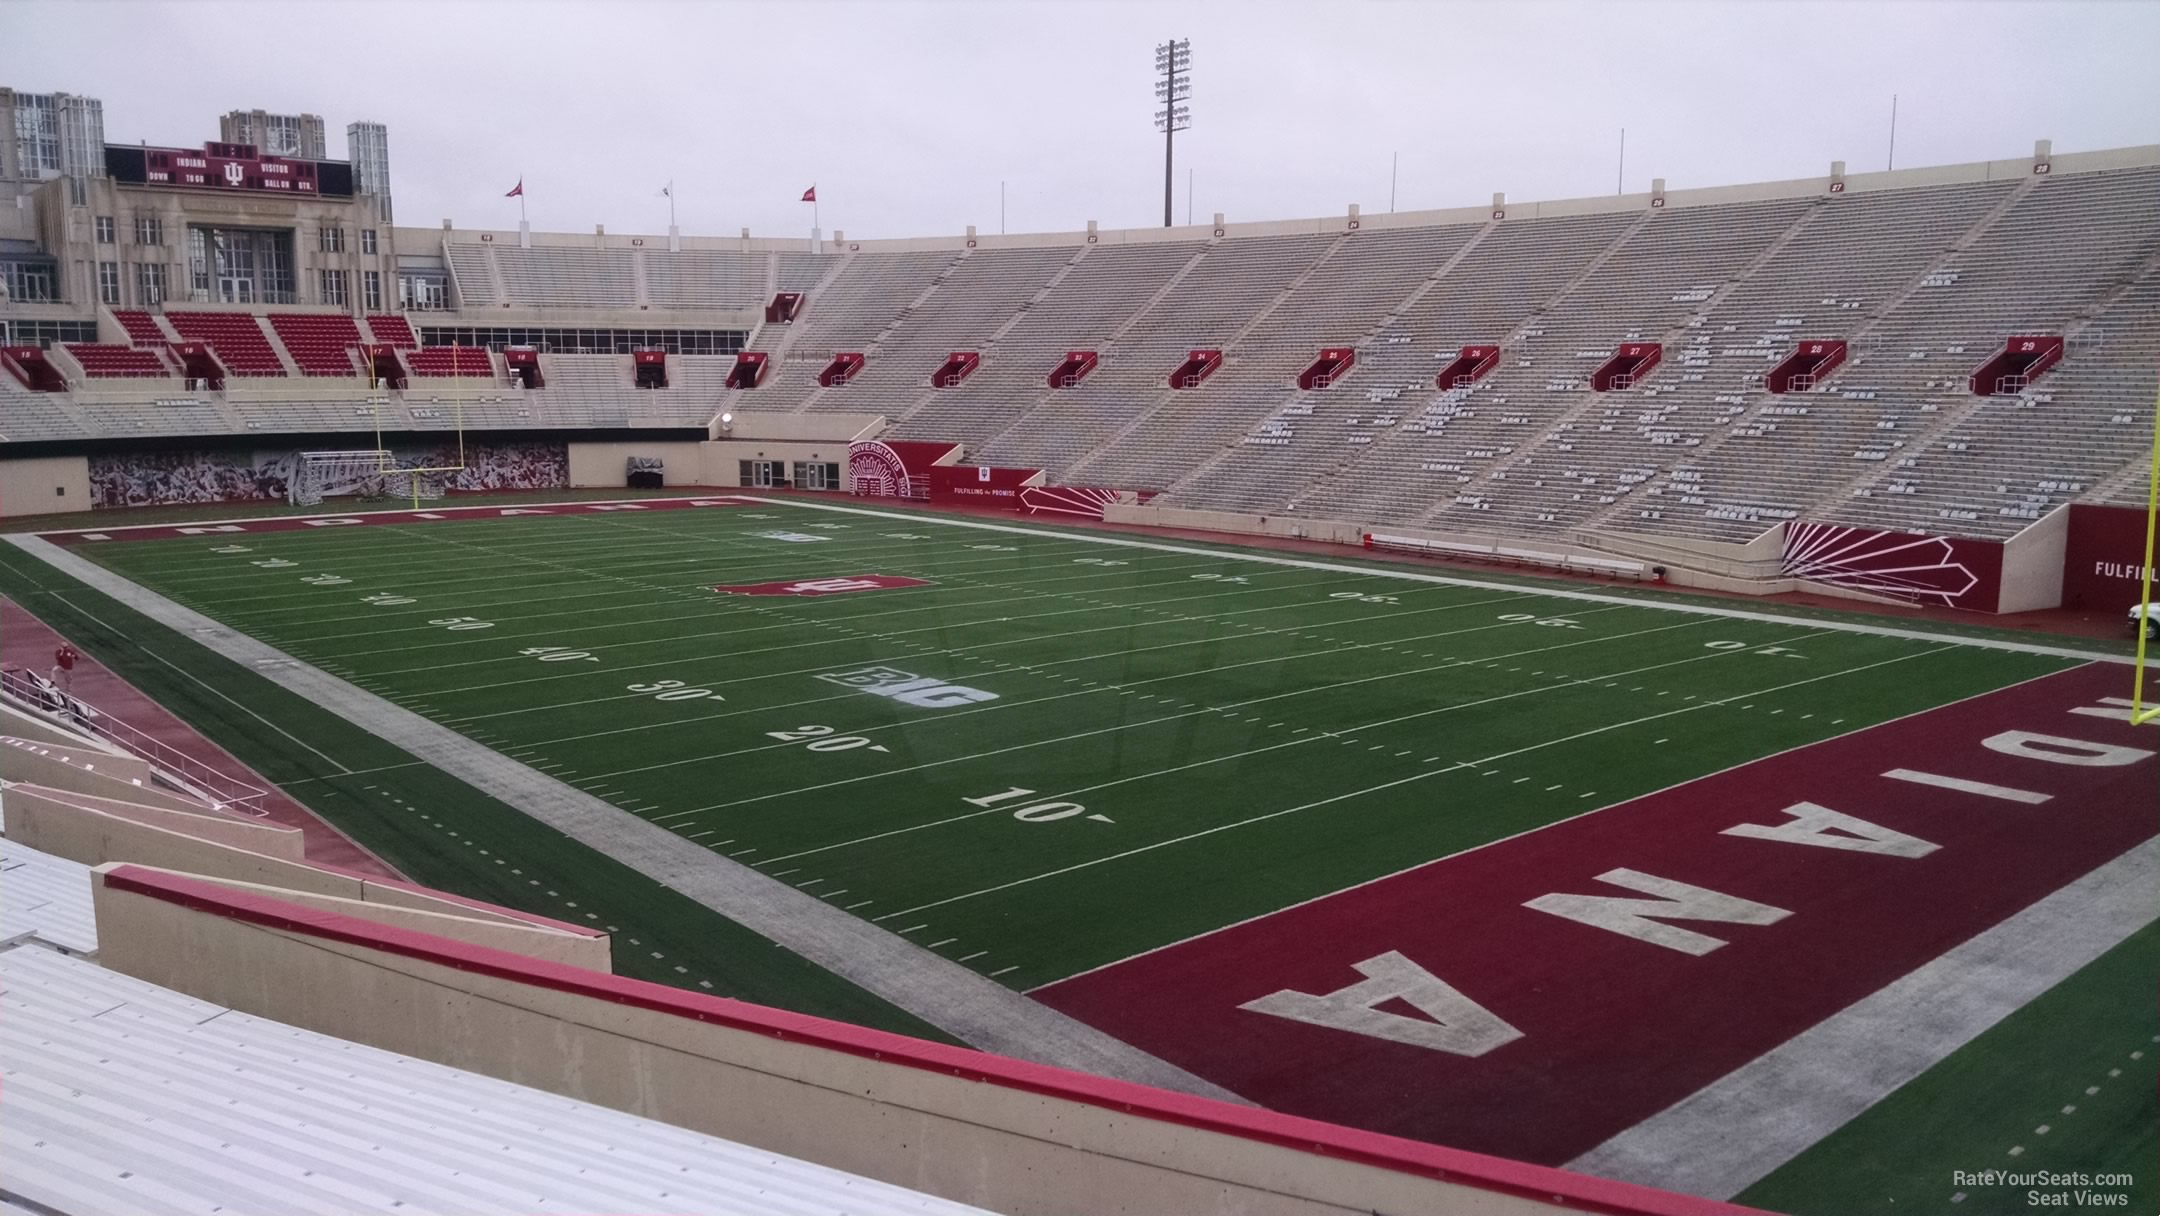 Seat View for Memorial Stadium - IN Section 1, Row 30